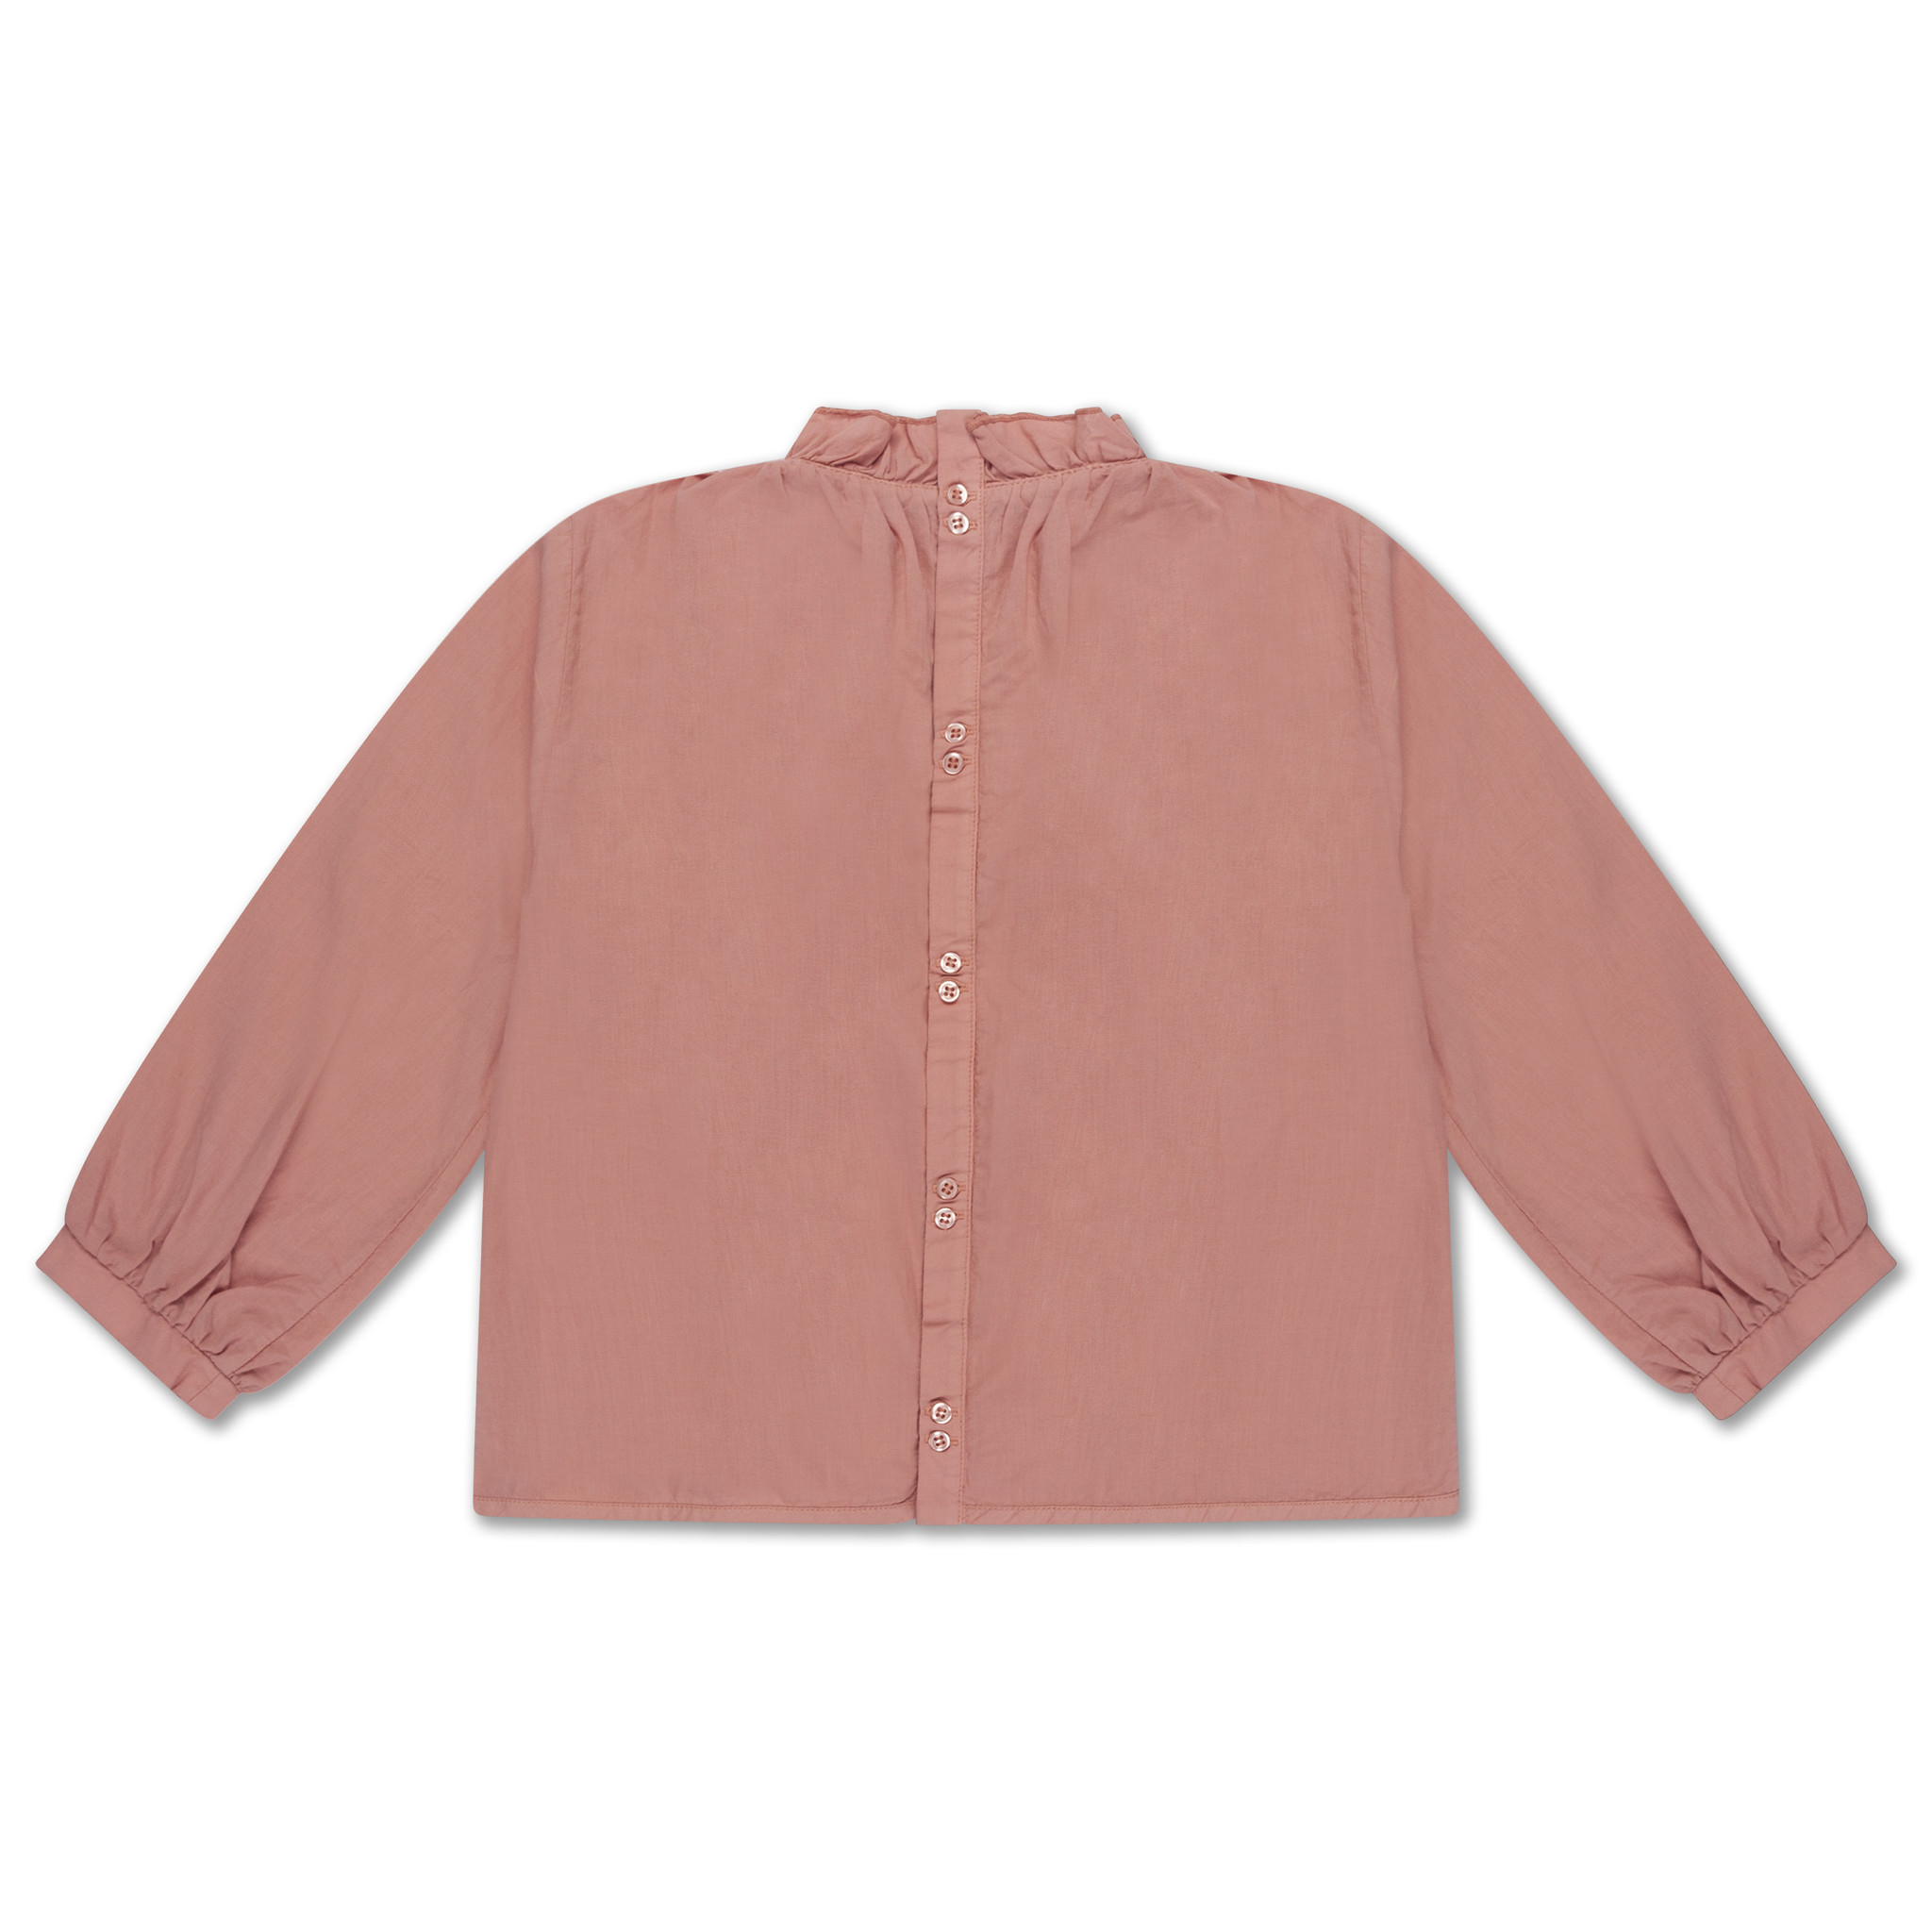 Ruffle blouse - Powder Peachy-3